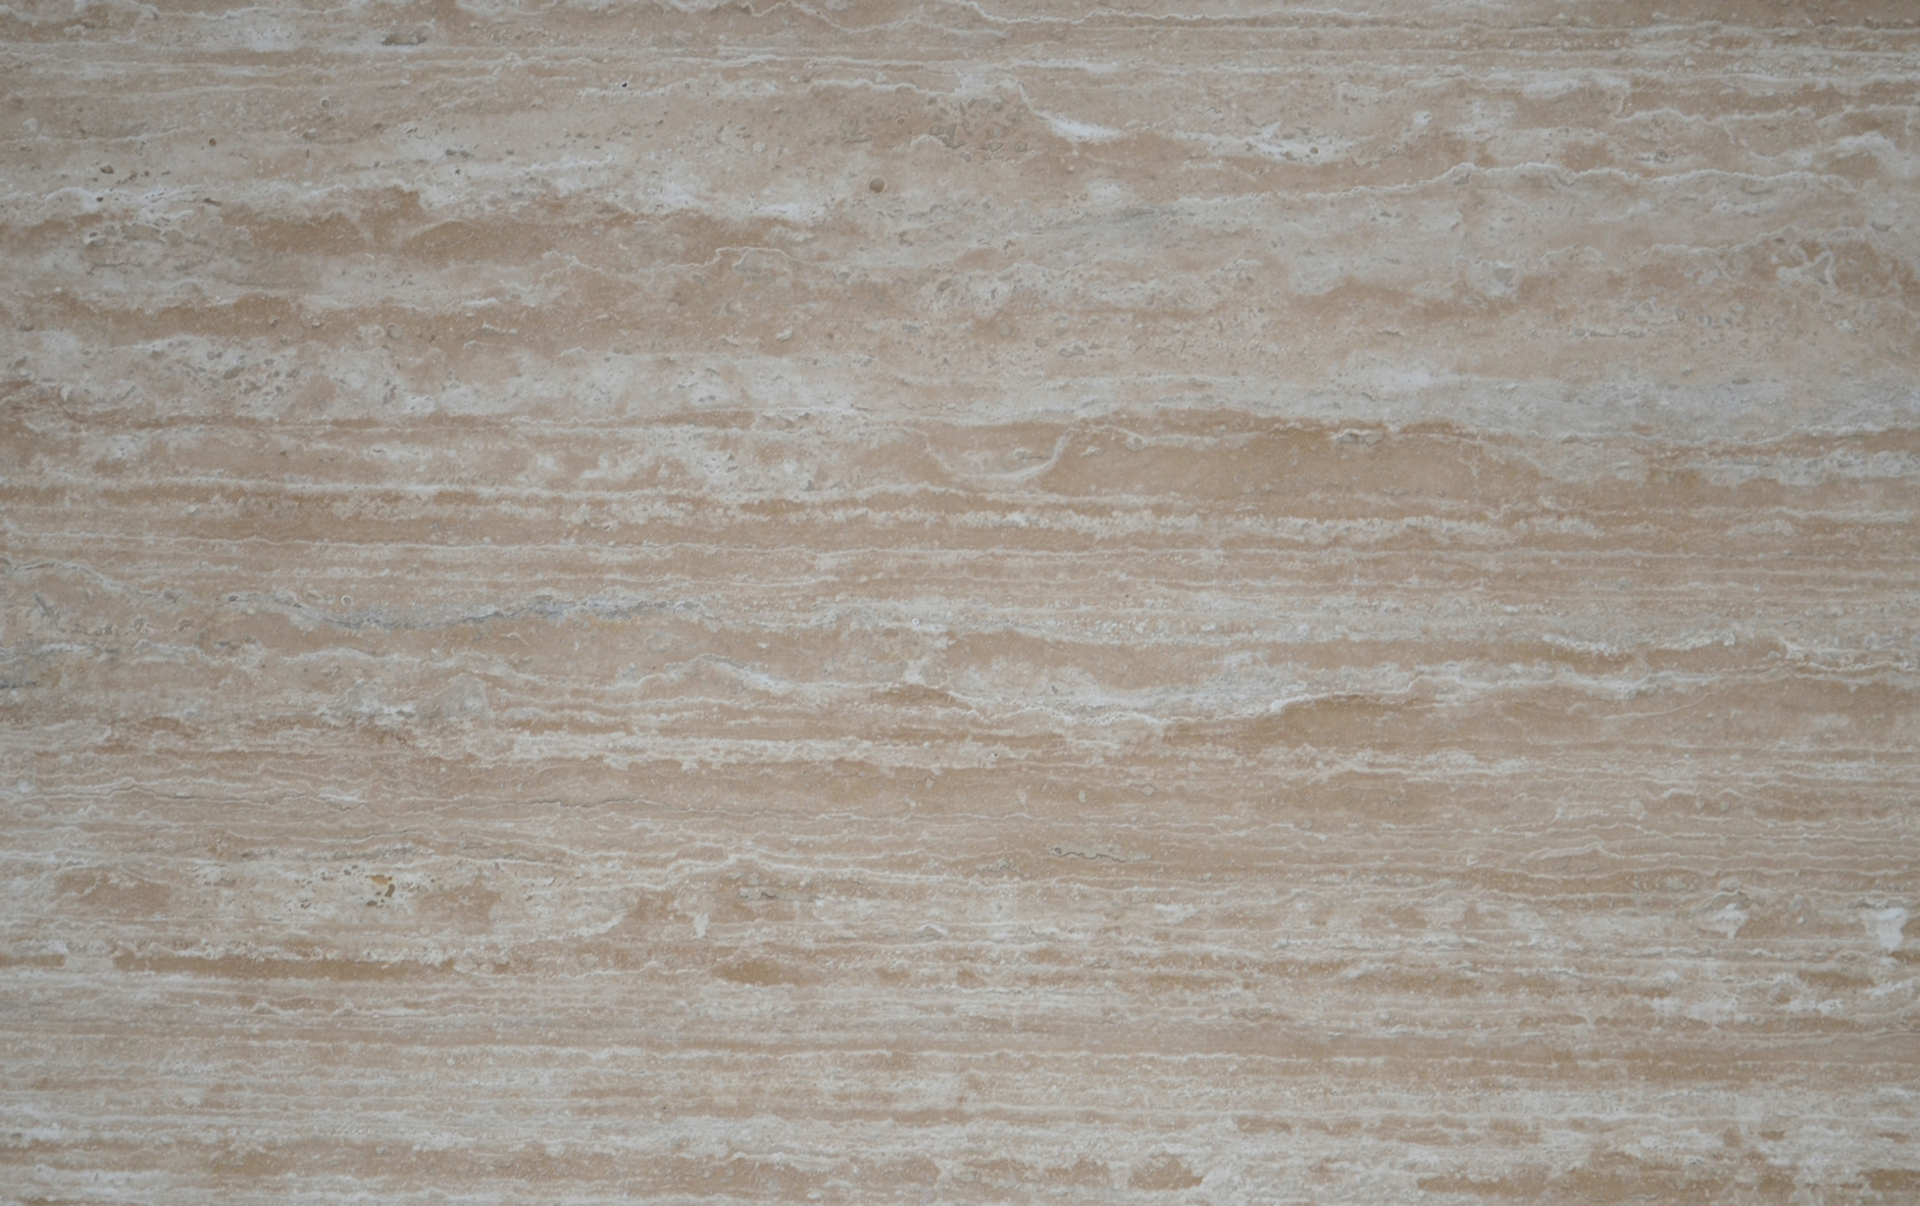 Classic Light Travertine Vein Cut